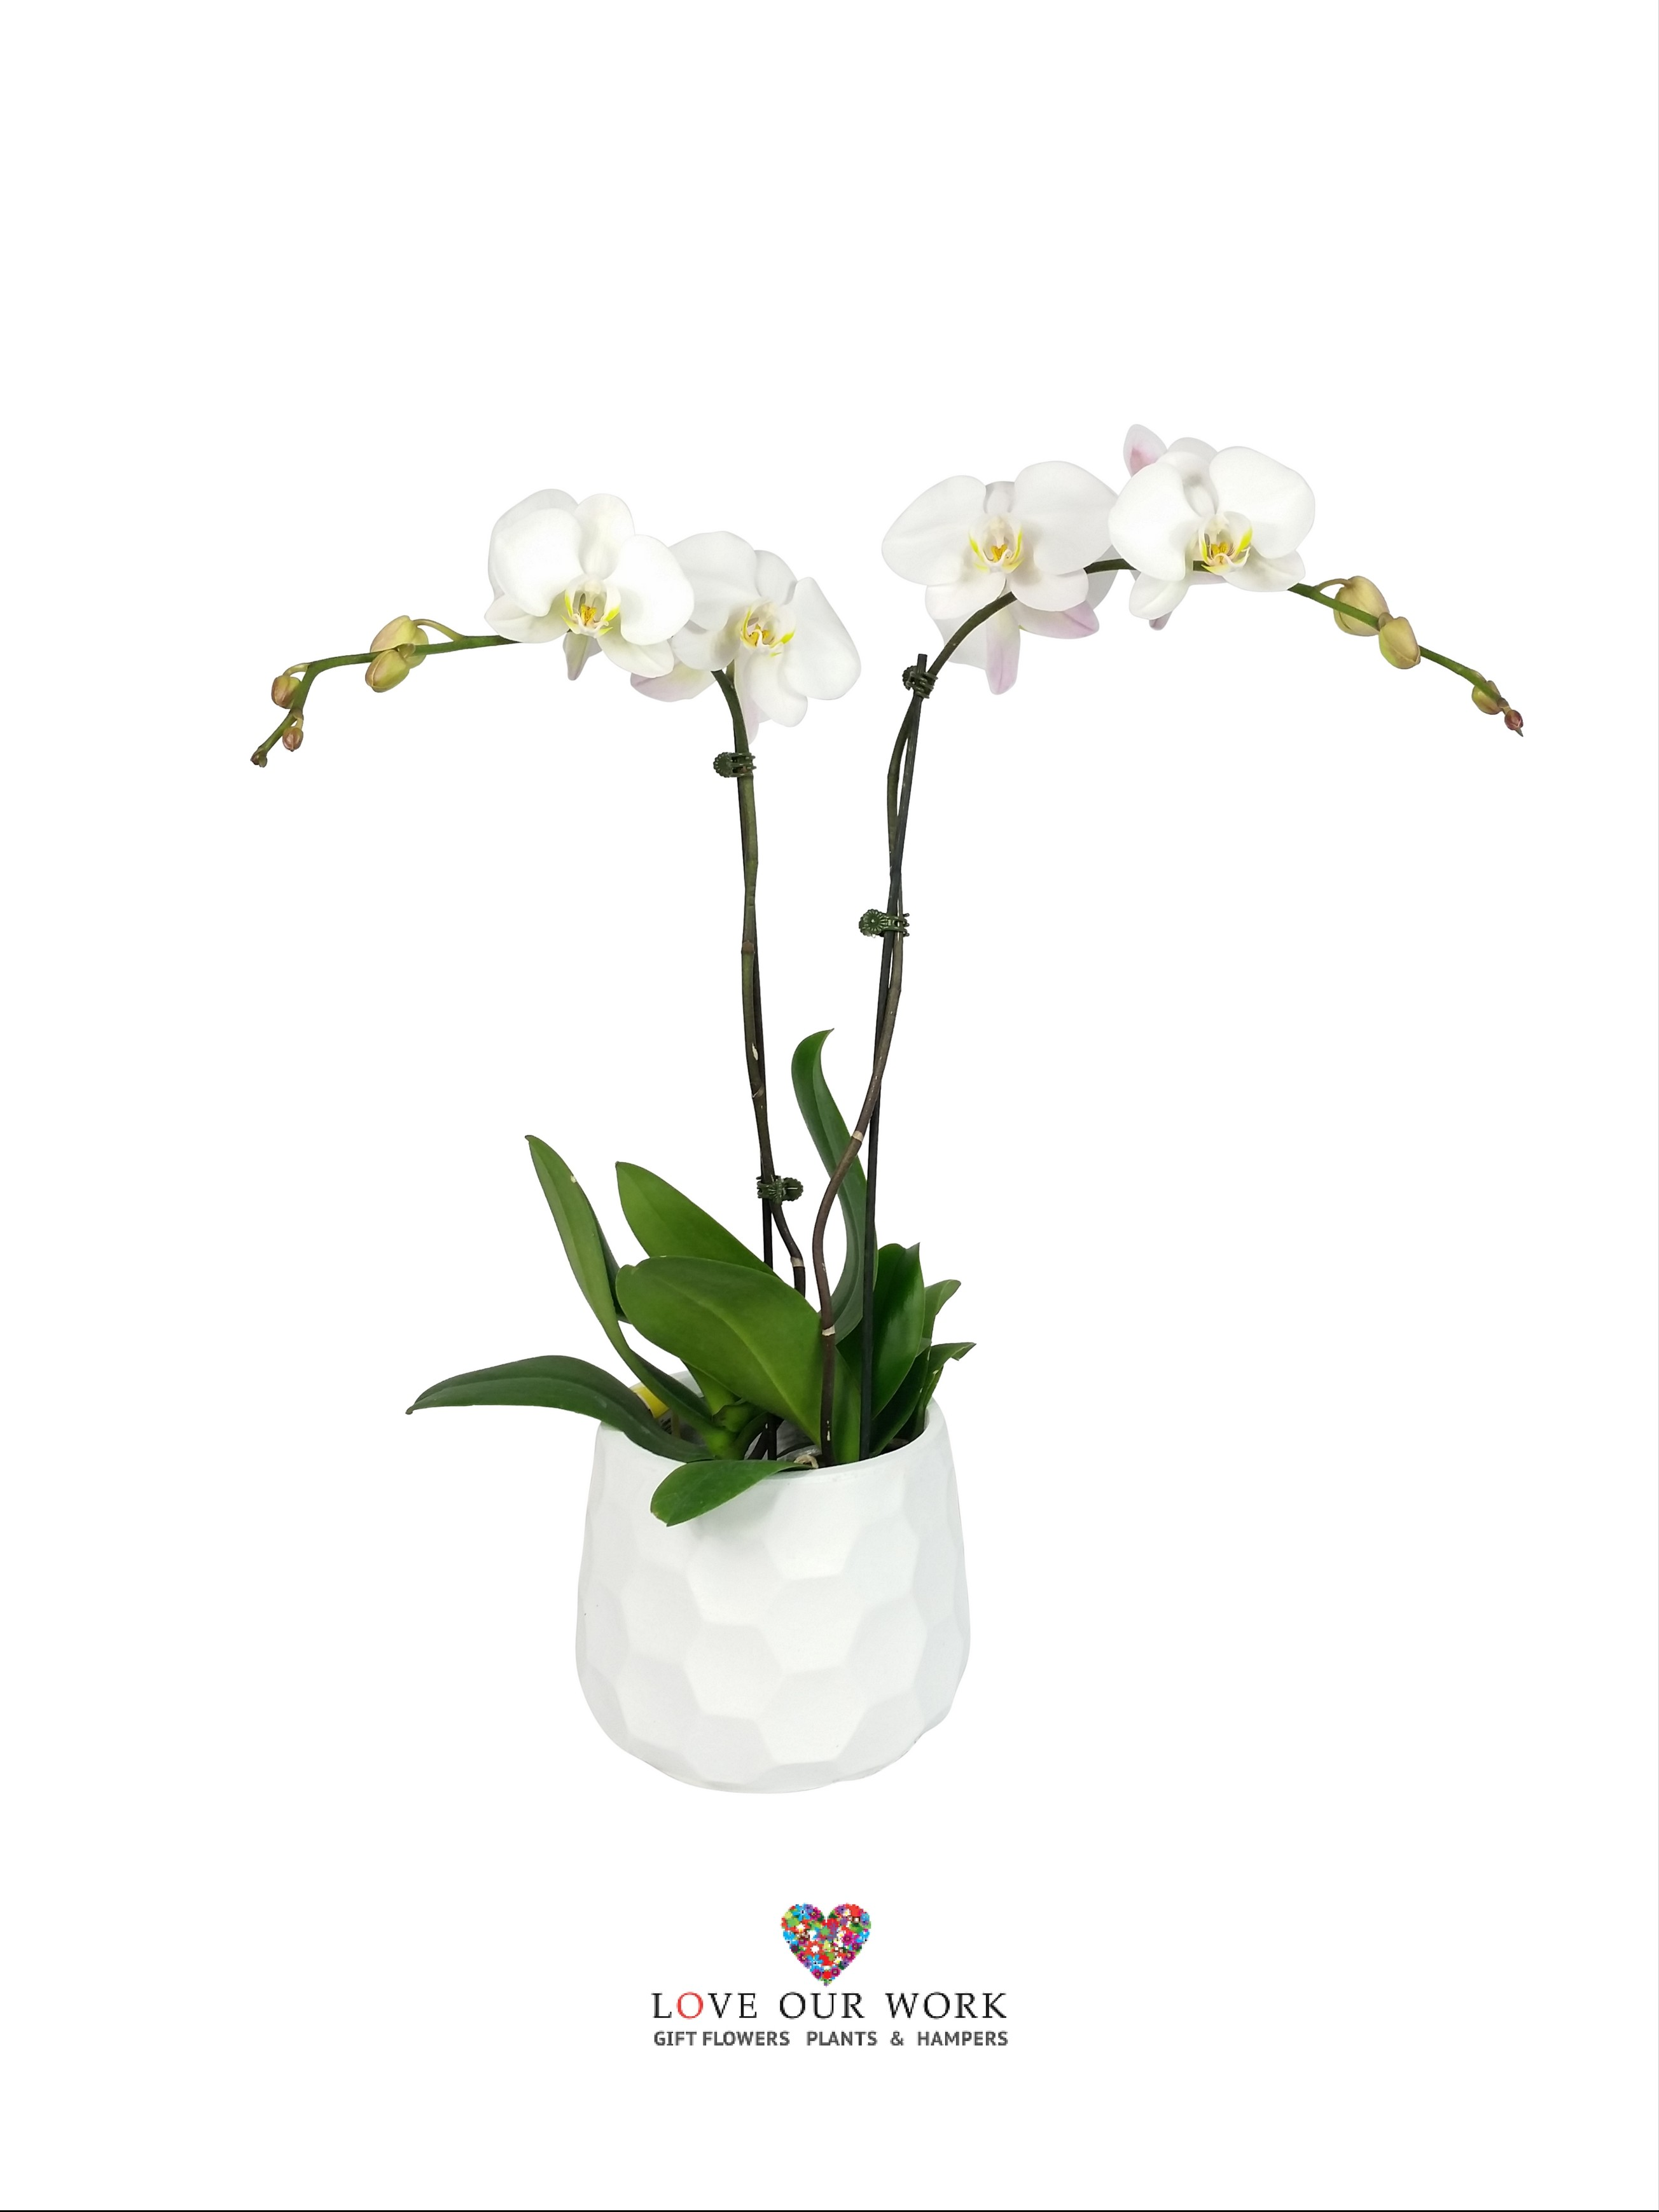 Pure. White. Bliss. Double spiked Phalaenopsis orchids in a modern white honeycomb pot